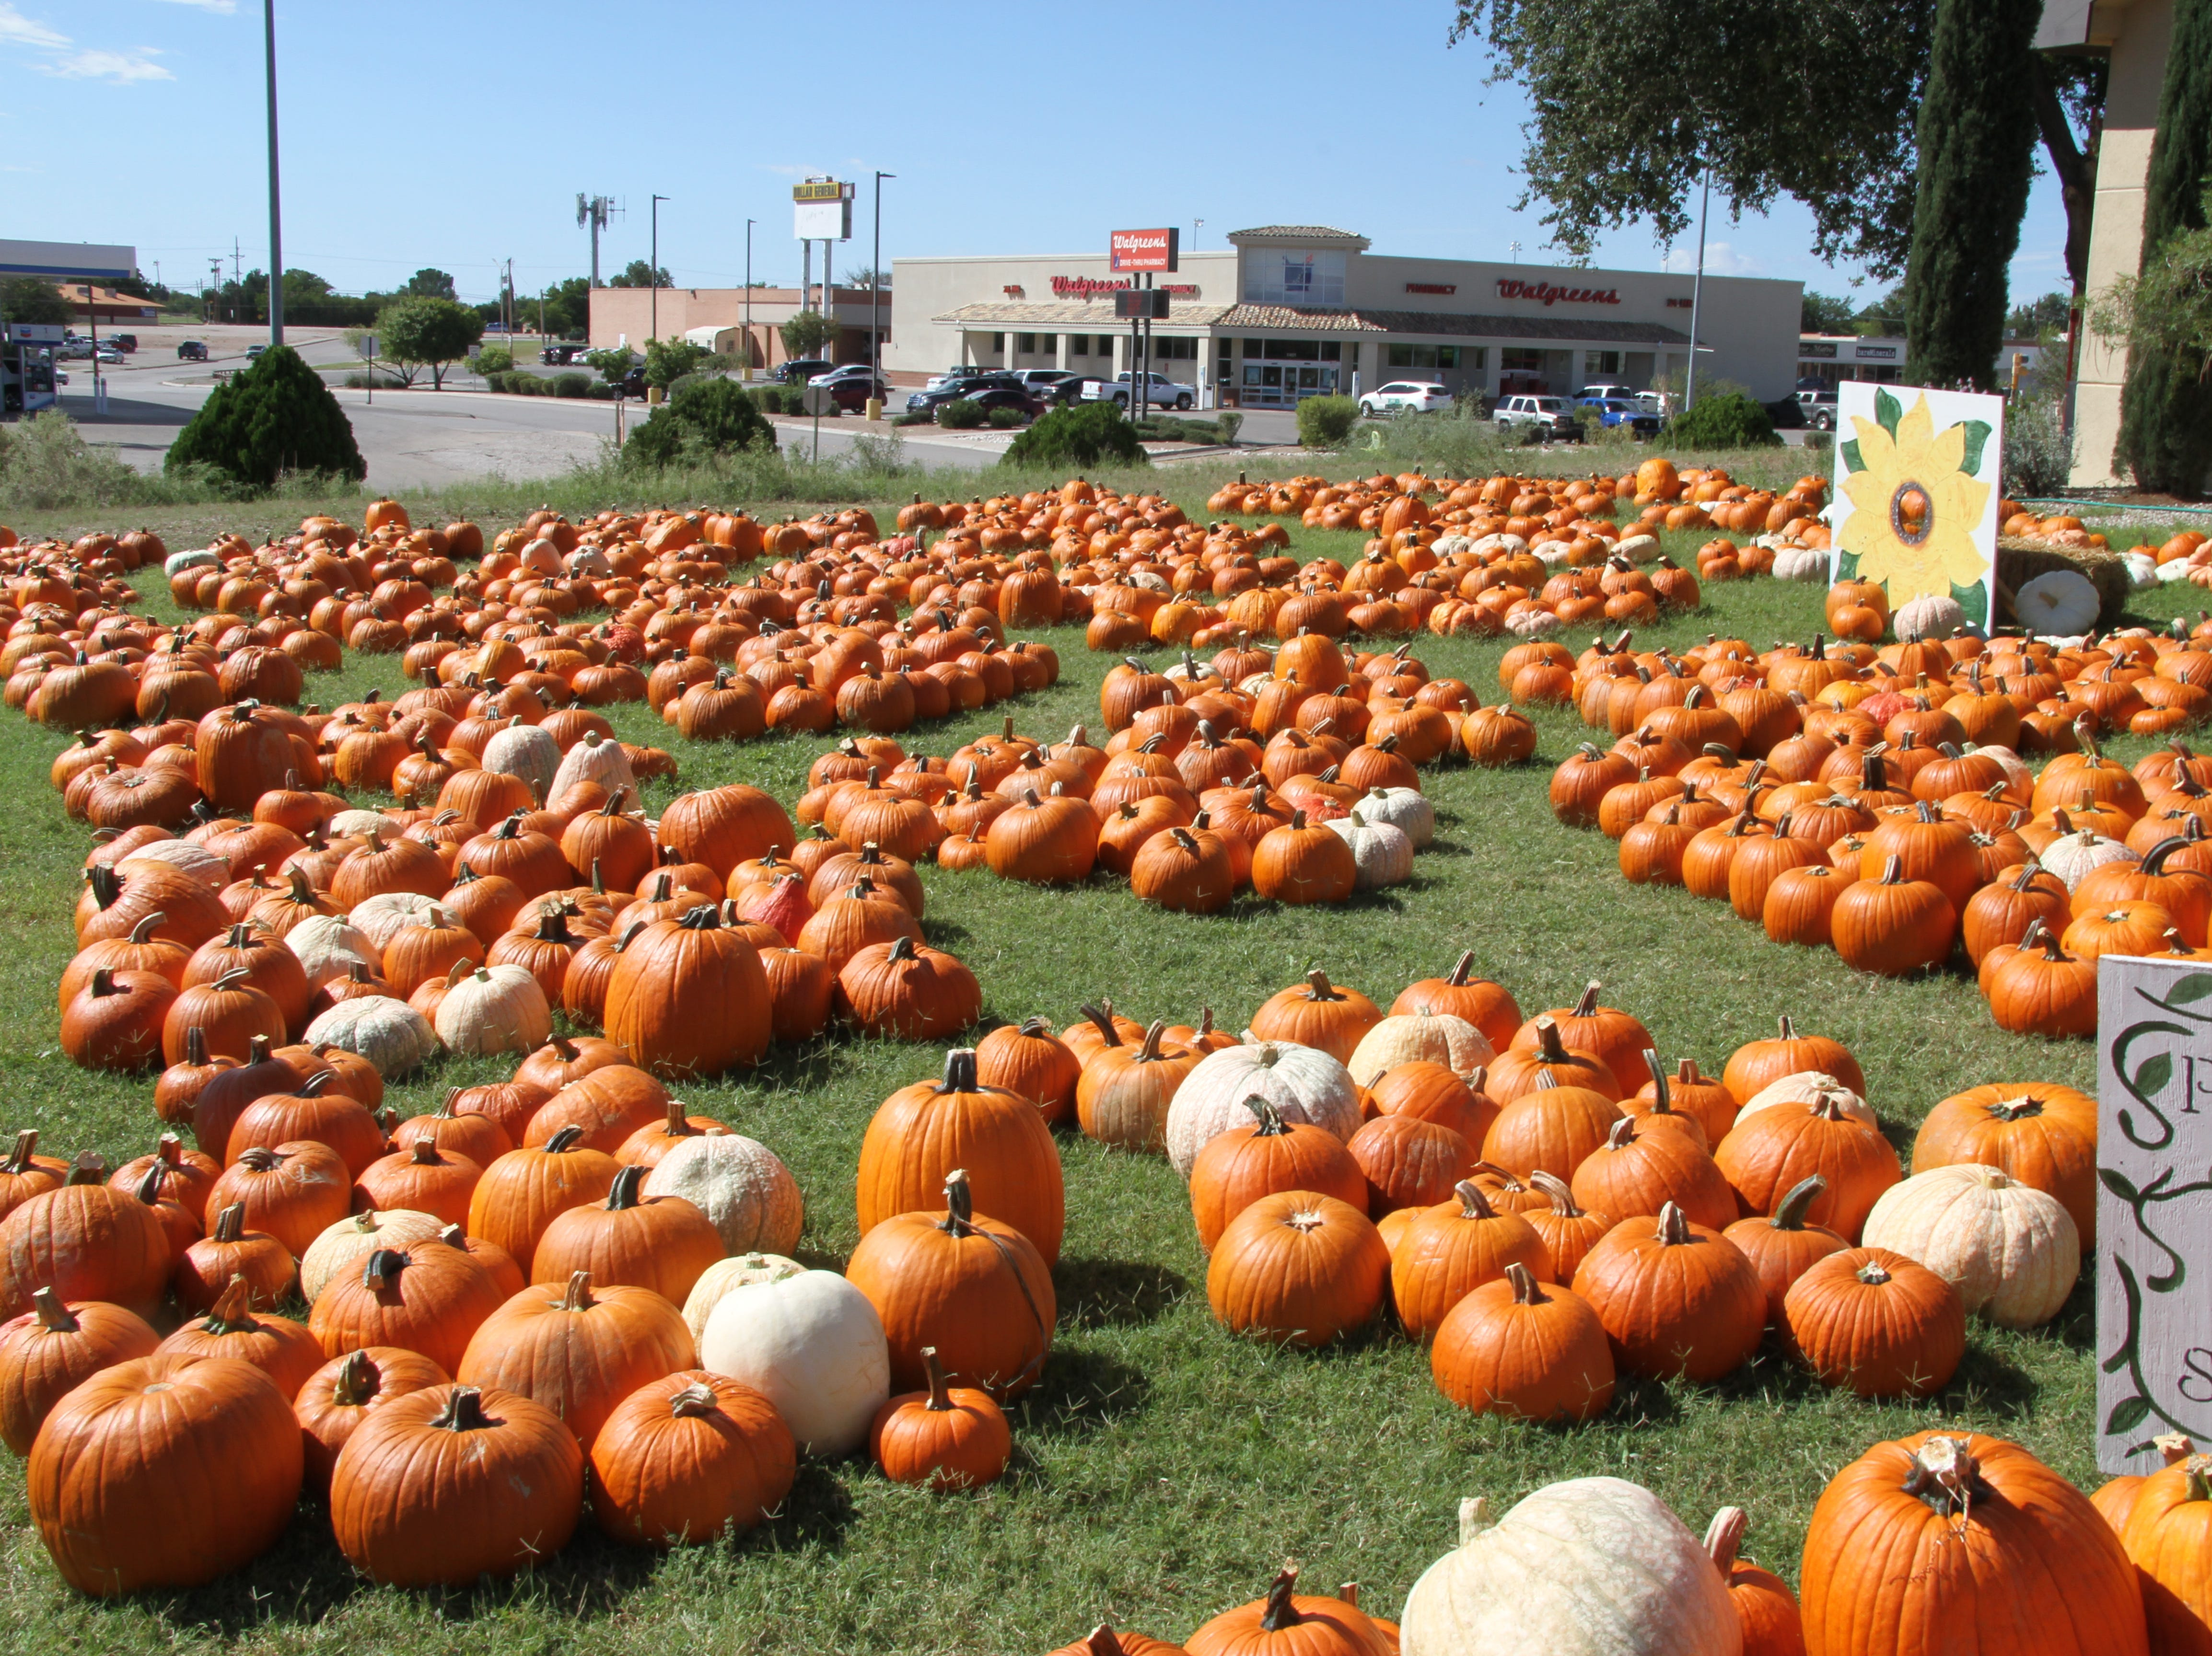 Pumpkins as far as the eye can see. St. Peter Lutheran Church in Carlsbad is hosting the 14th annual pumpkin patch. Pumpkins are priced based on size and there is no admission fee.